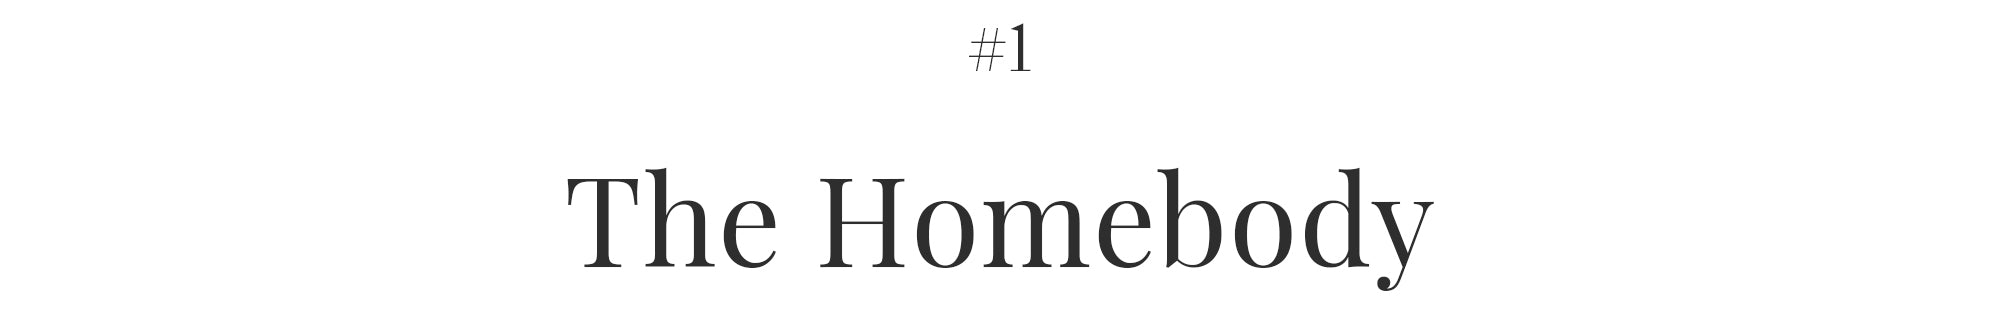 #1 THE HOMEBODY